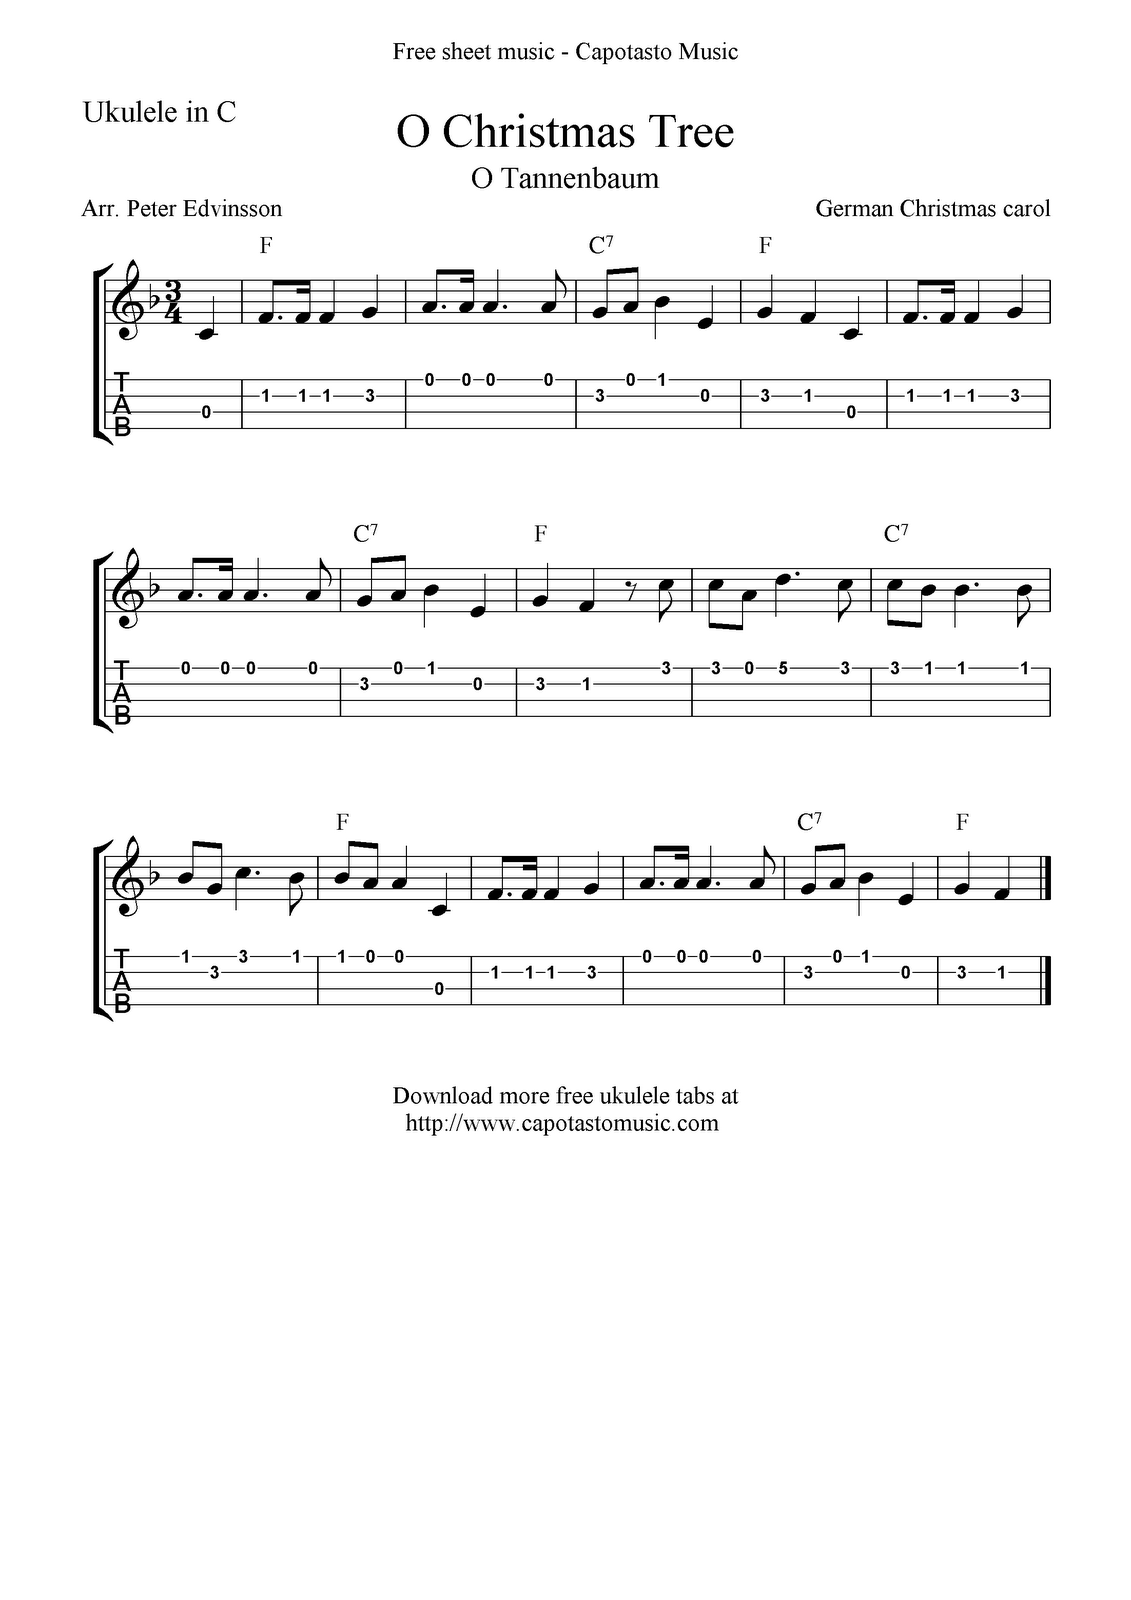 """O Christmas Tree"" (""O Tannenbaum"") Ukulele Sheet Music"